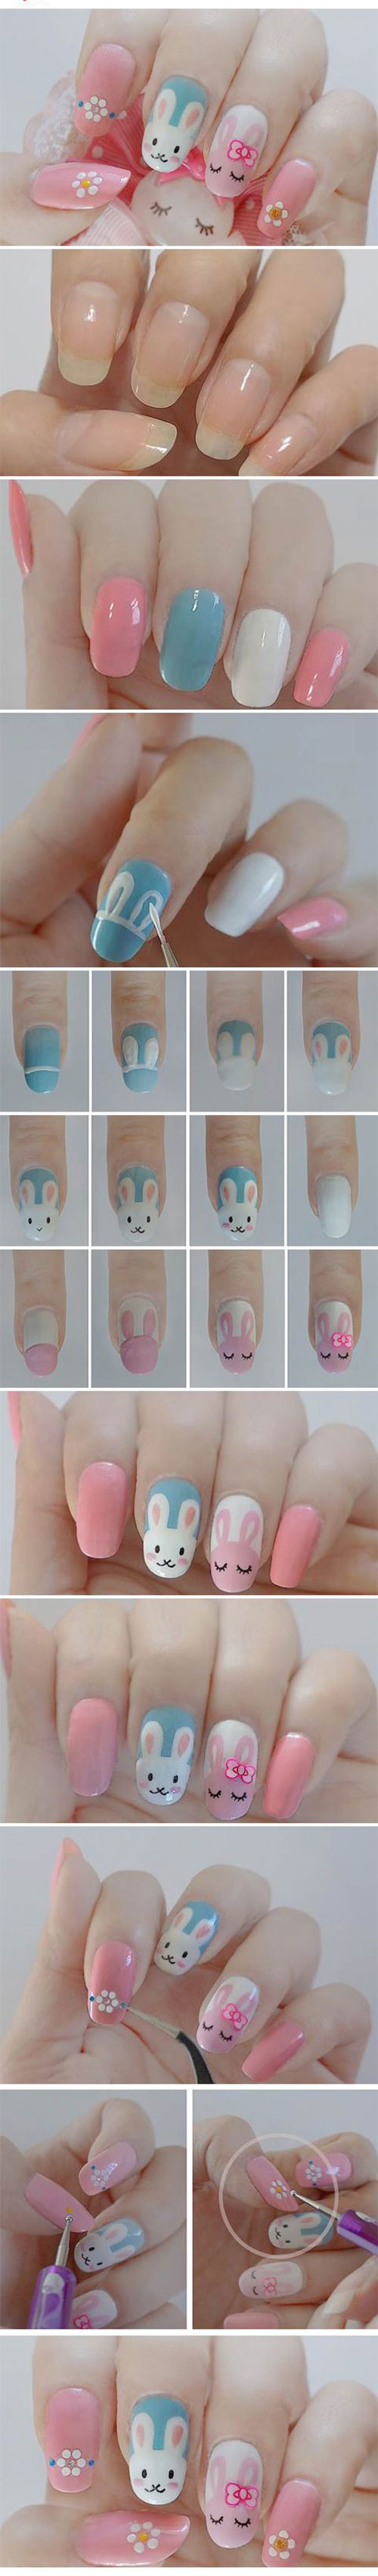 12-Easter-Nail-Art-Tutorials-For-Beginners-Learners-2017-9